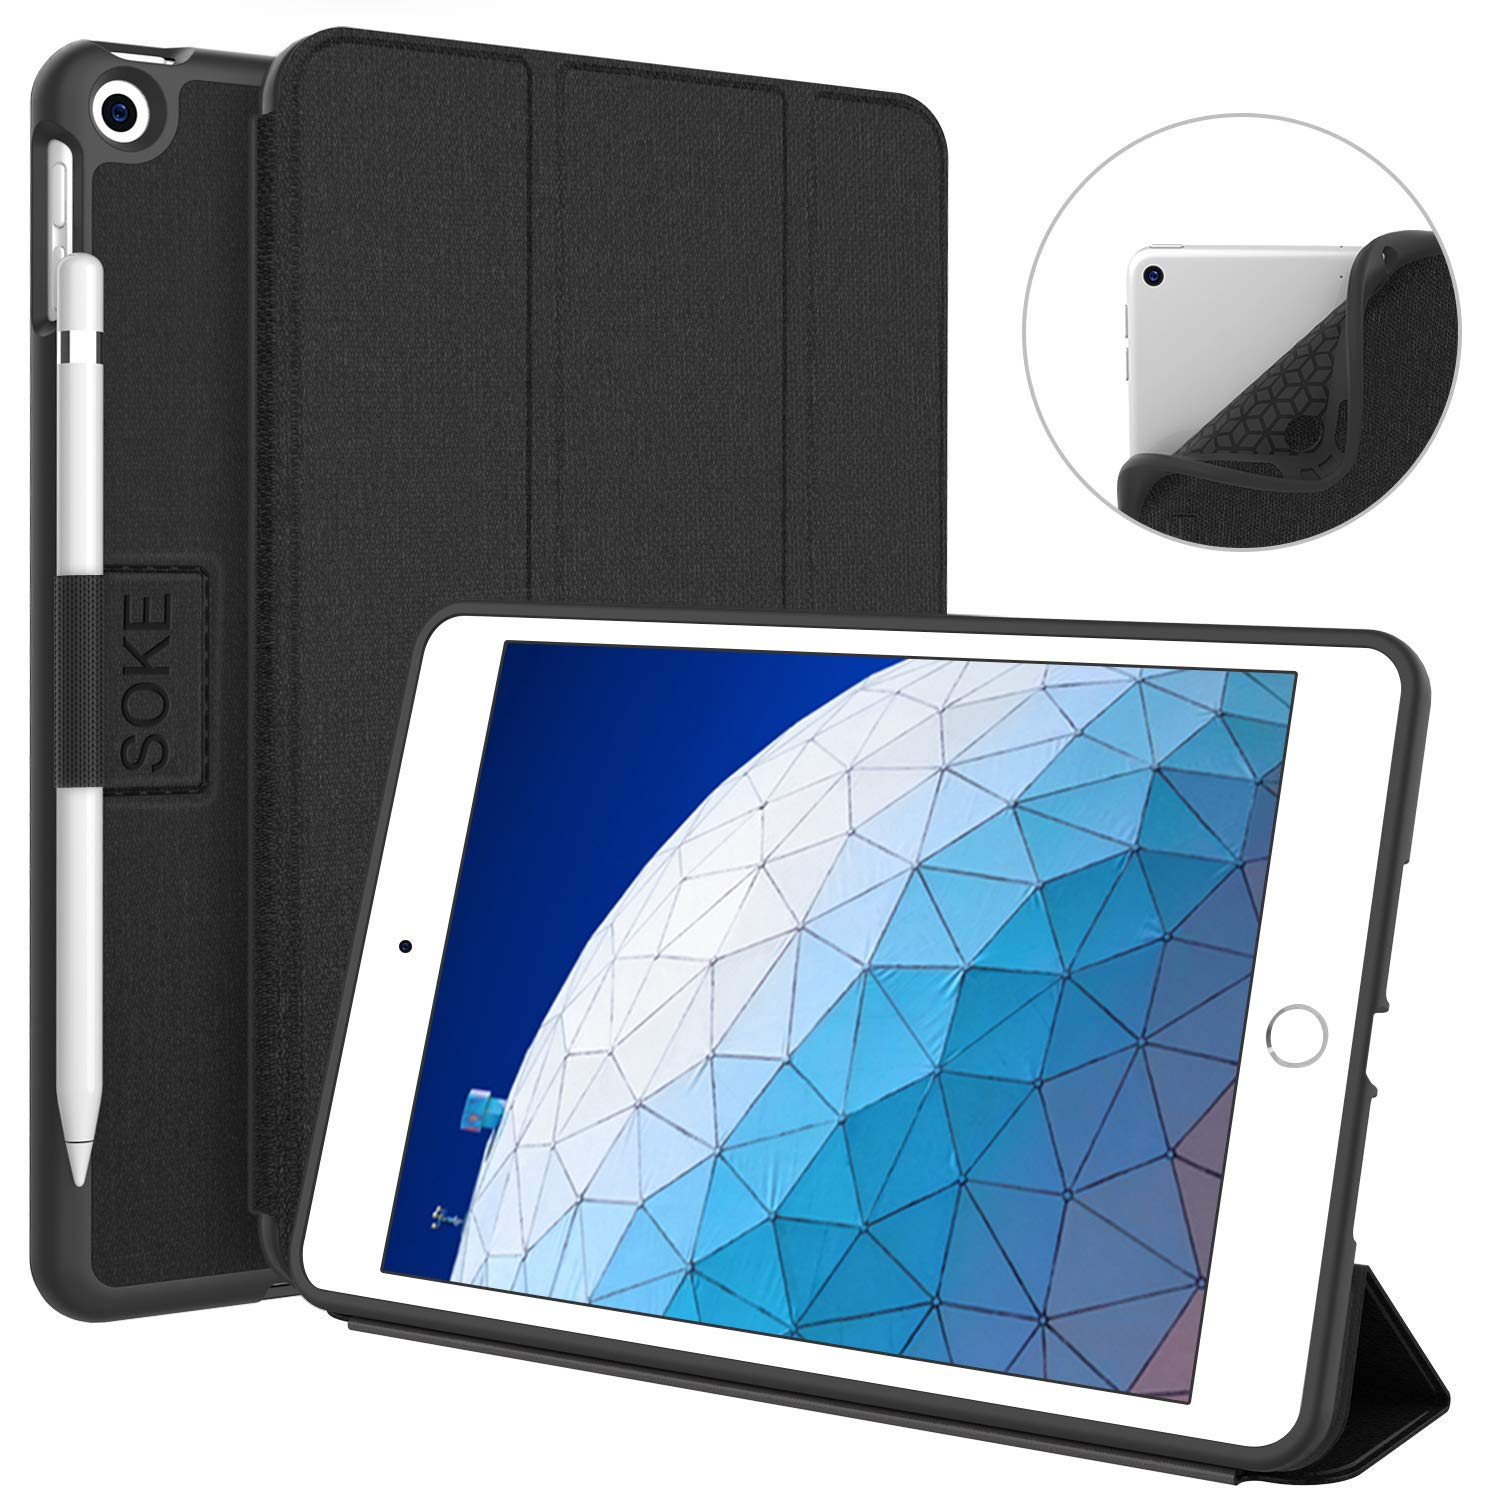 "Soke iPad Air 3 Case 10.5"" 2019 with Pencil Holder, Premium Trifold Case with Strong Protection, Auto Sleep/Wake, Ultra Slim Soft TPU Back Cover for iPad Air 3rd Generation(Black)"